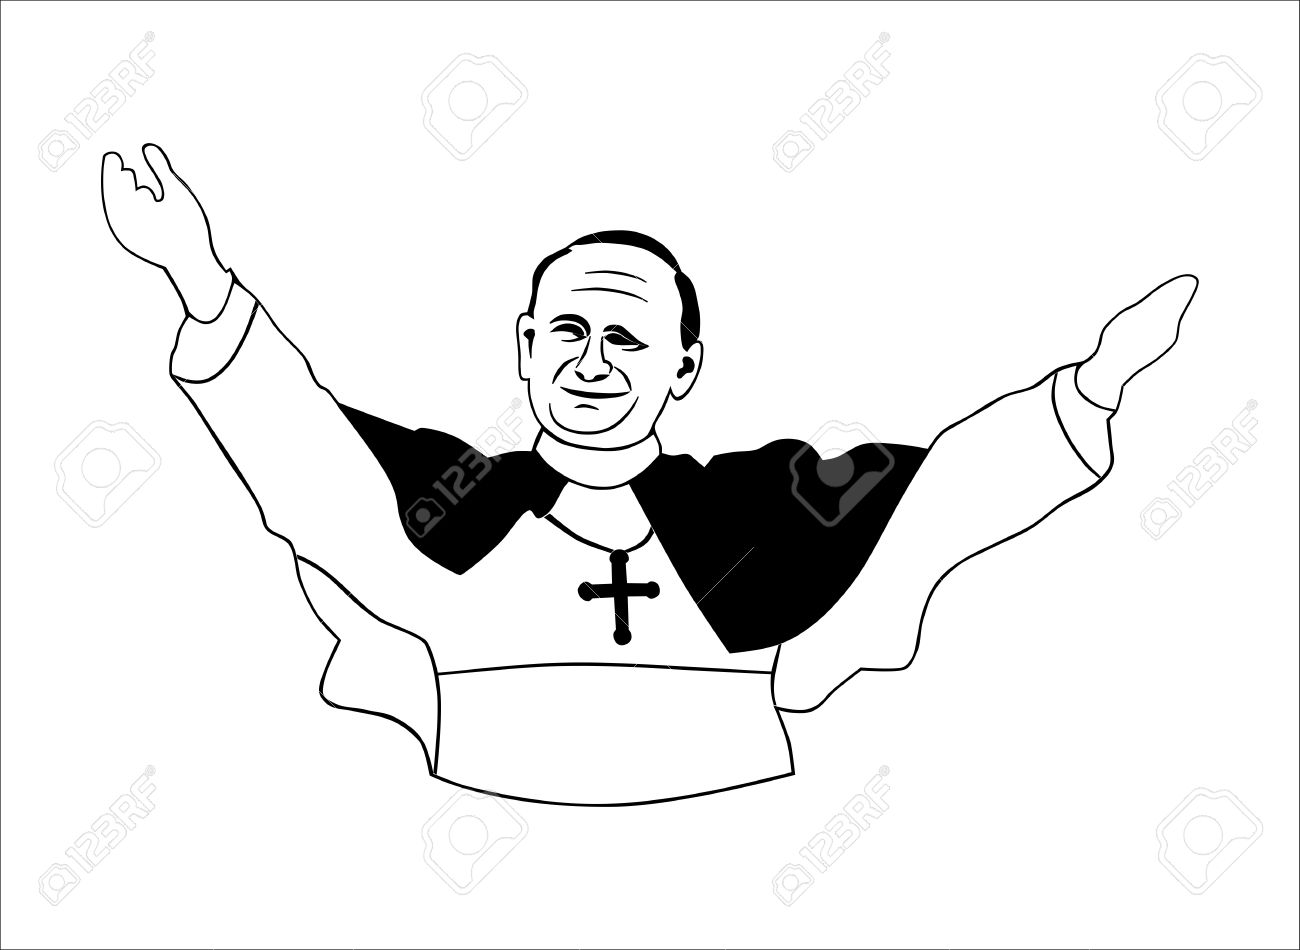 Priest clipart black and white 5 » Clipart Station.